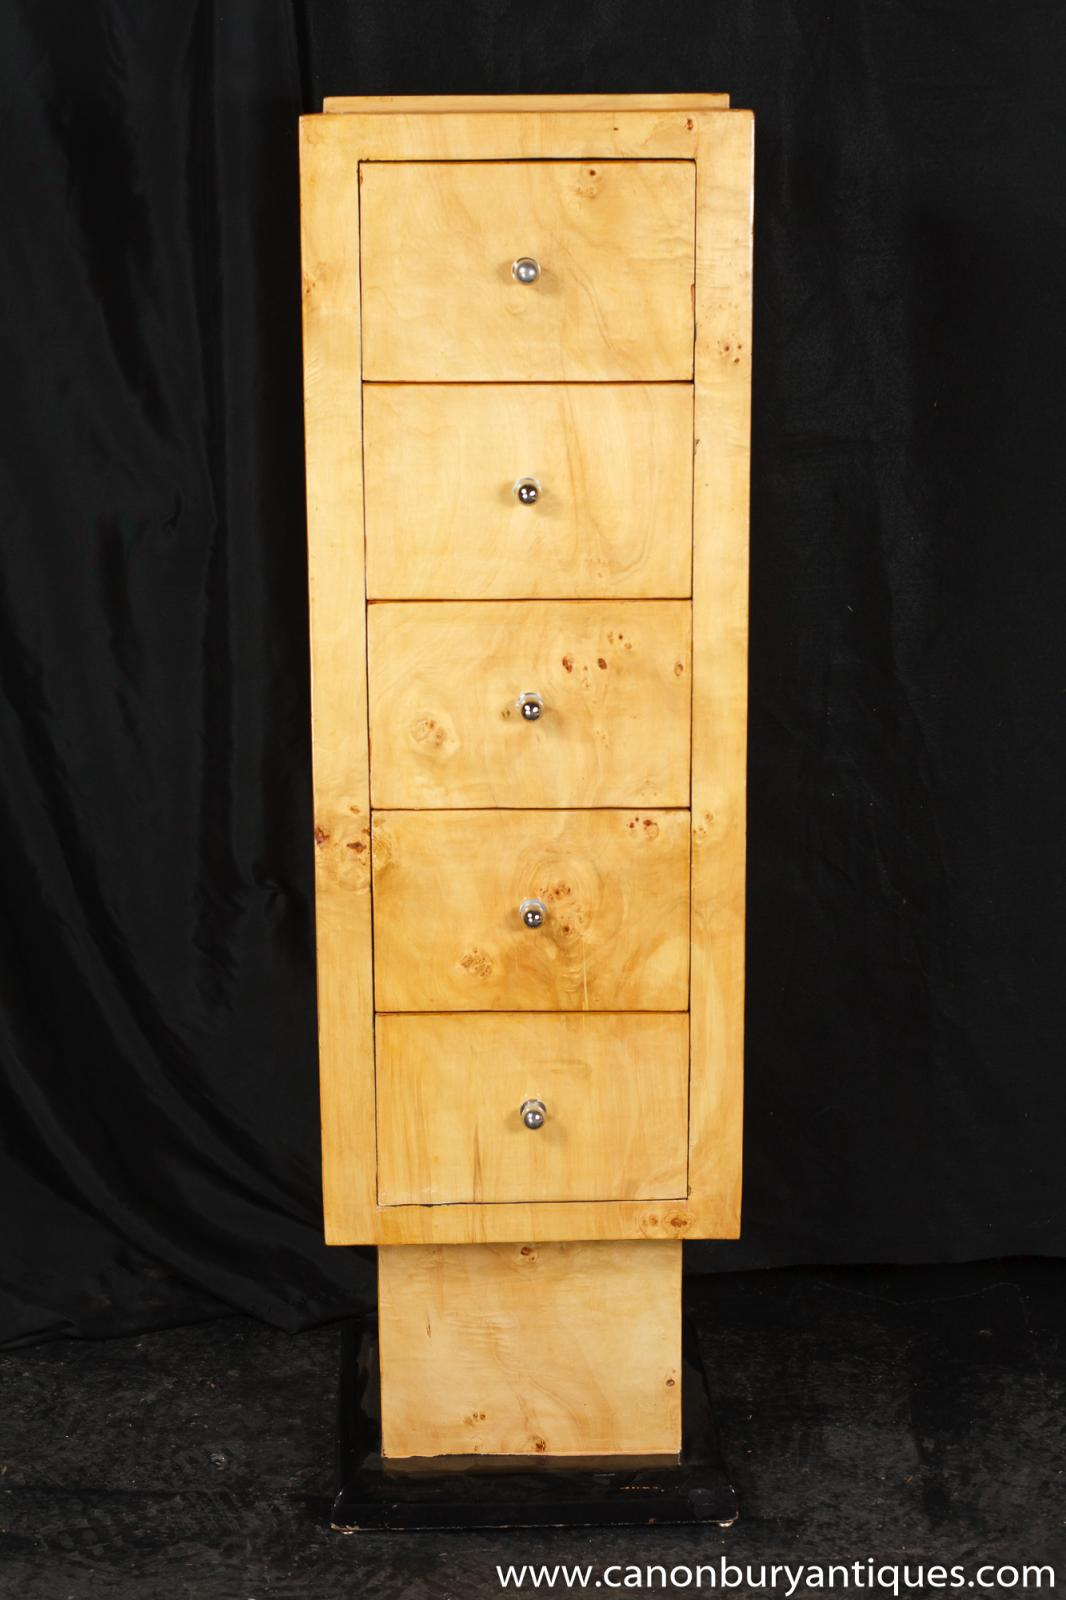 Details About Single Art Deco Tall Boy Chest Drawers 1920s Furniture